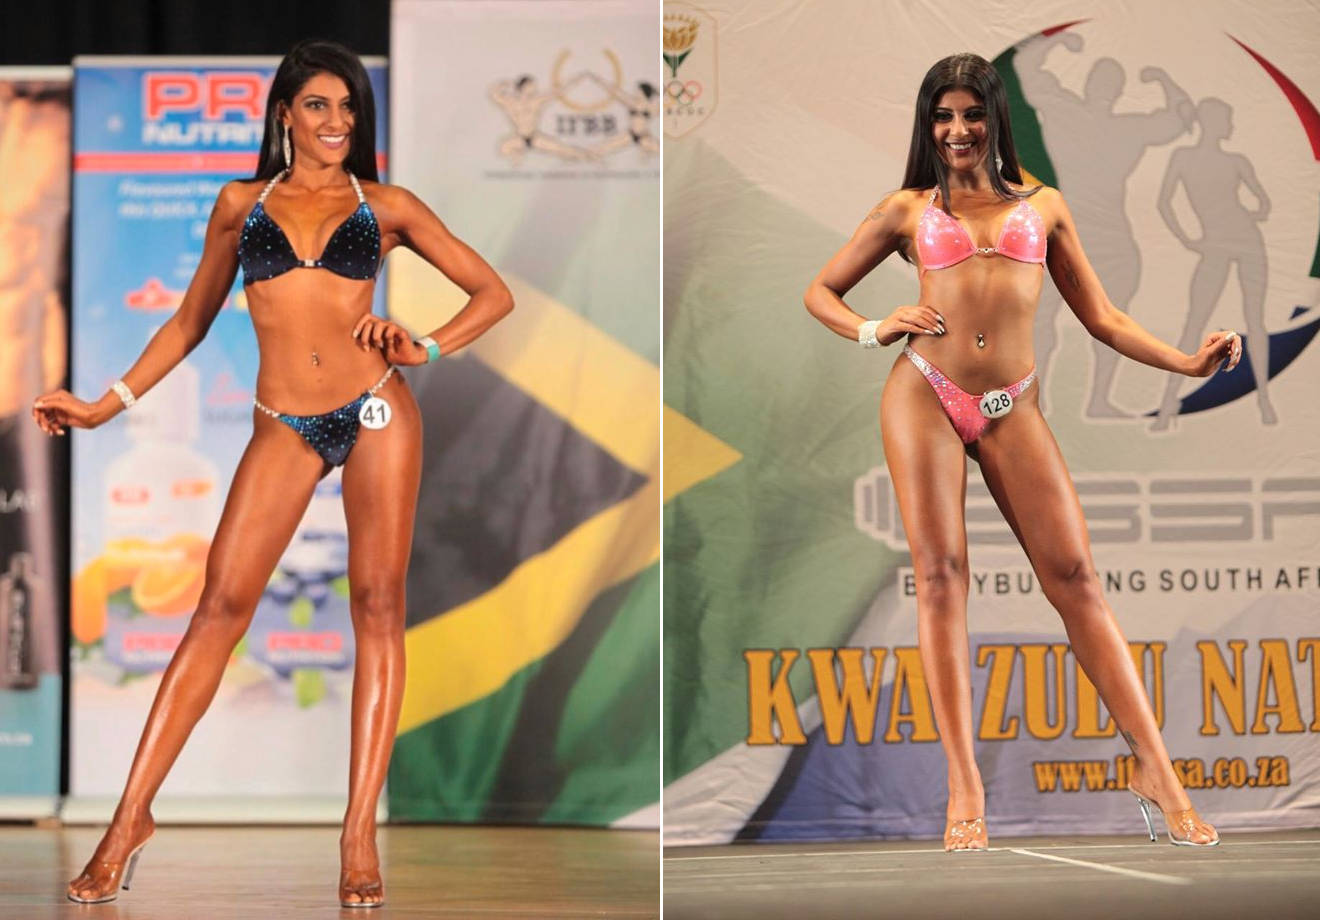 Ready.Set.Prep, Preparing For The Competition Season By Beyond The Bikini, Melissa Kannigan